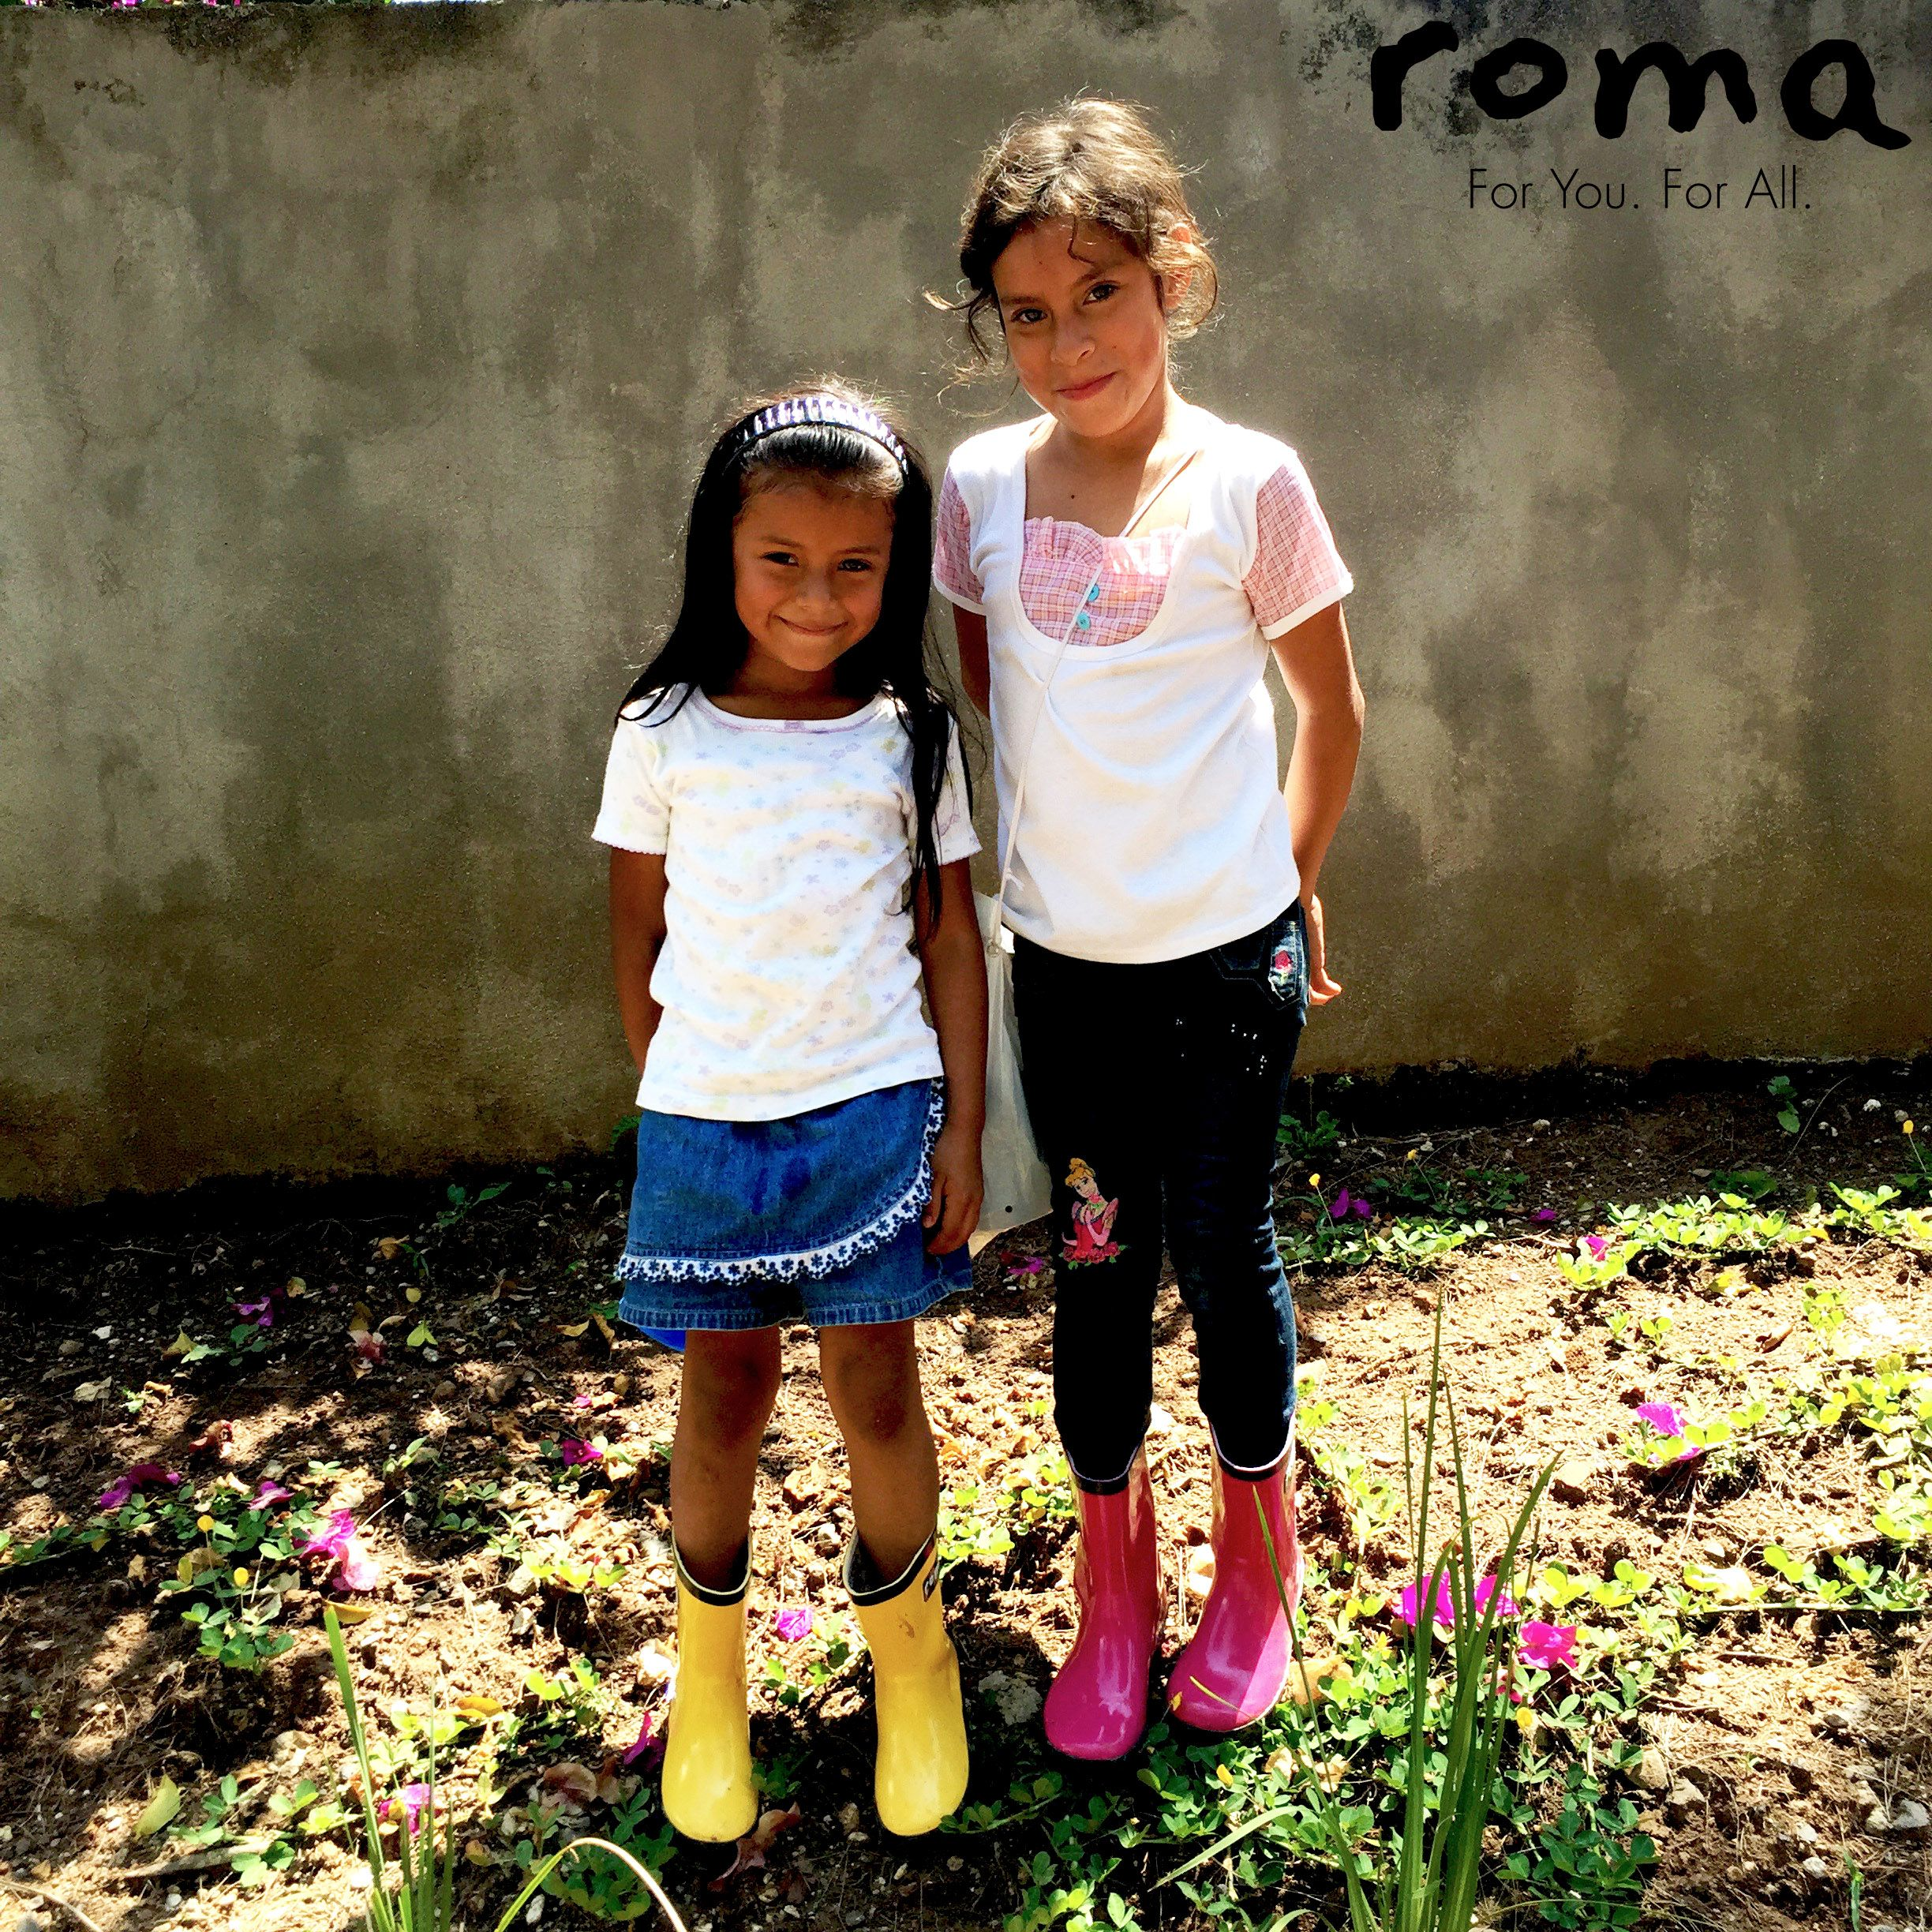 Flowers and smiling kids are signs of Spring in Guatemala too! #BootDrop #Guatemala #RomaBoots